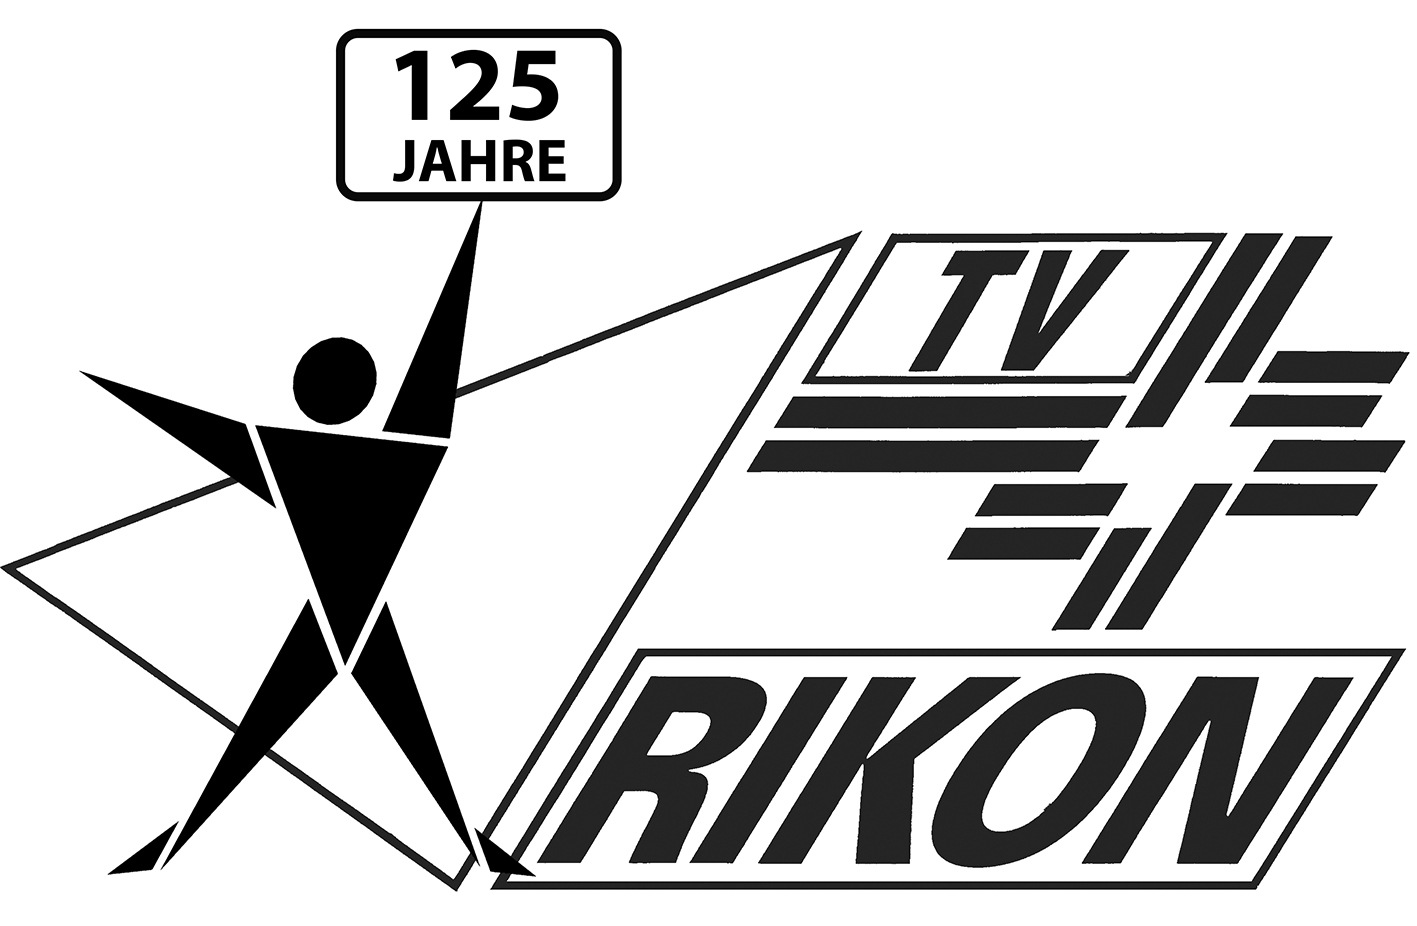 Turnverein Rikon